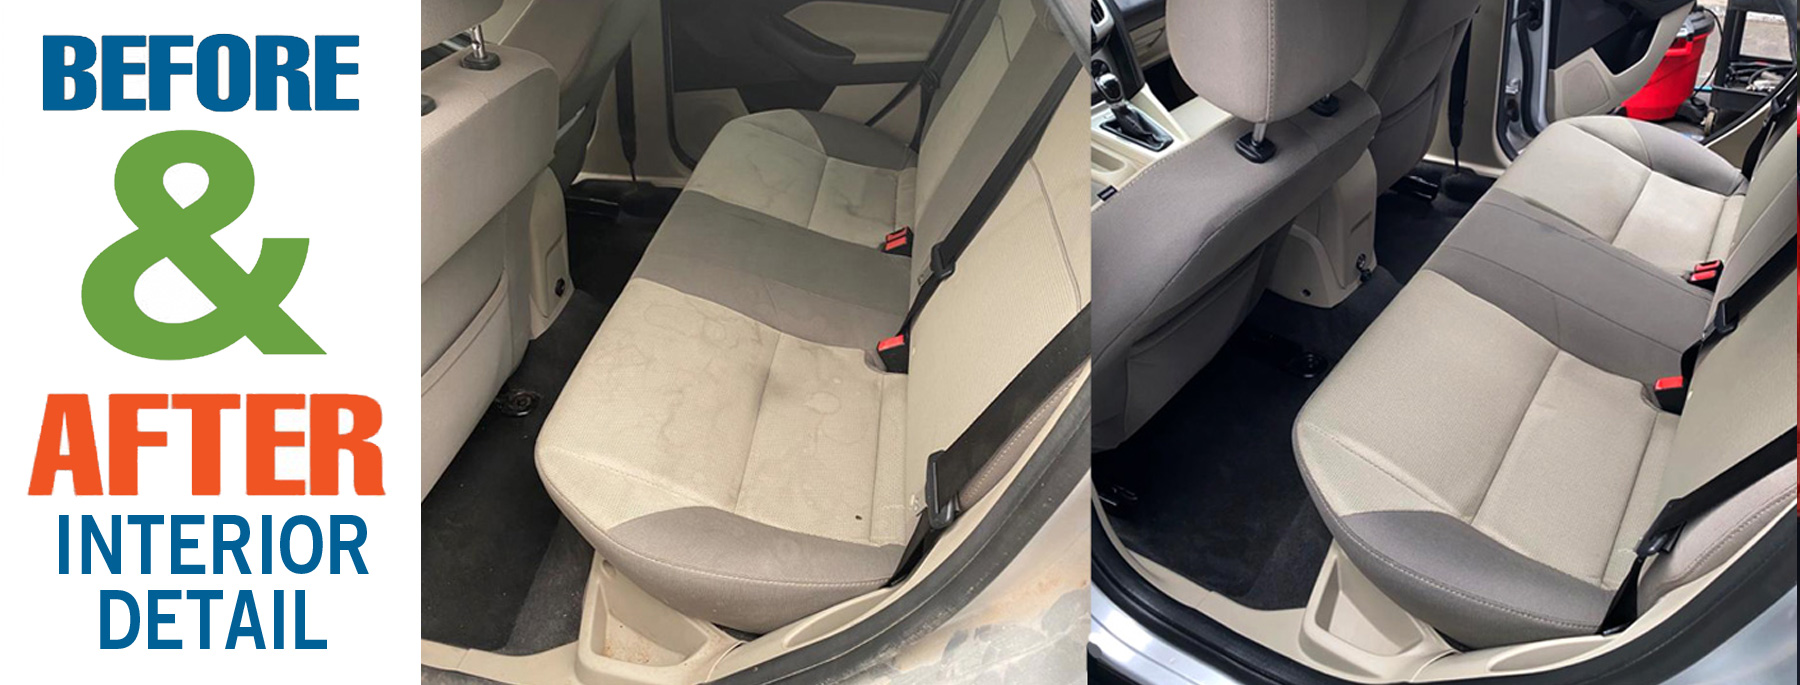 Before and after leather seat reconditioning at Sunset North Car Wash